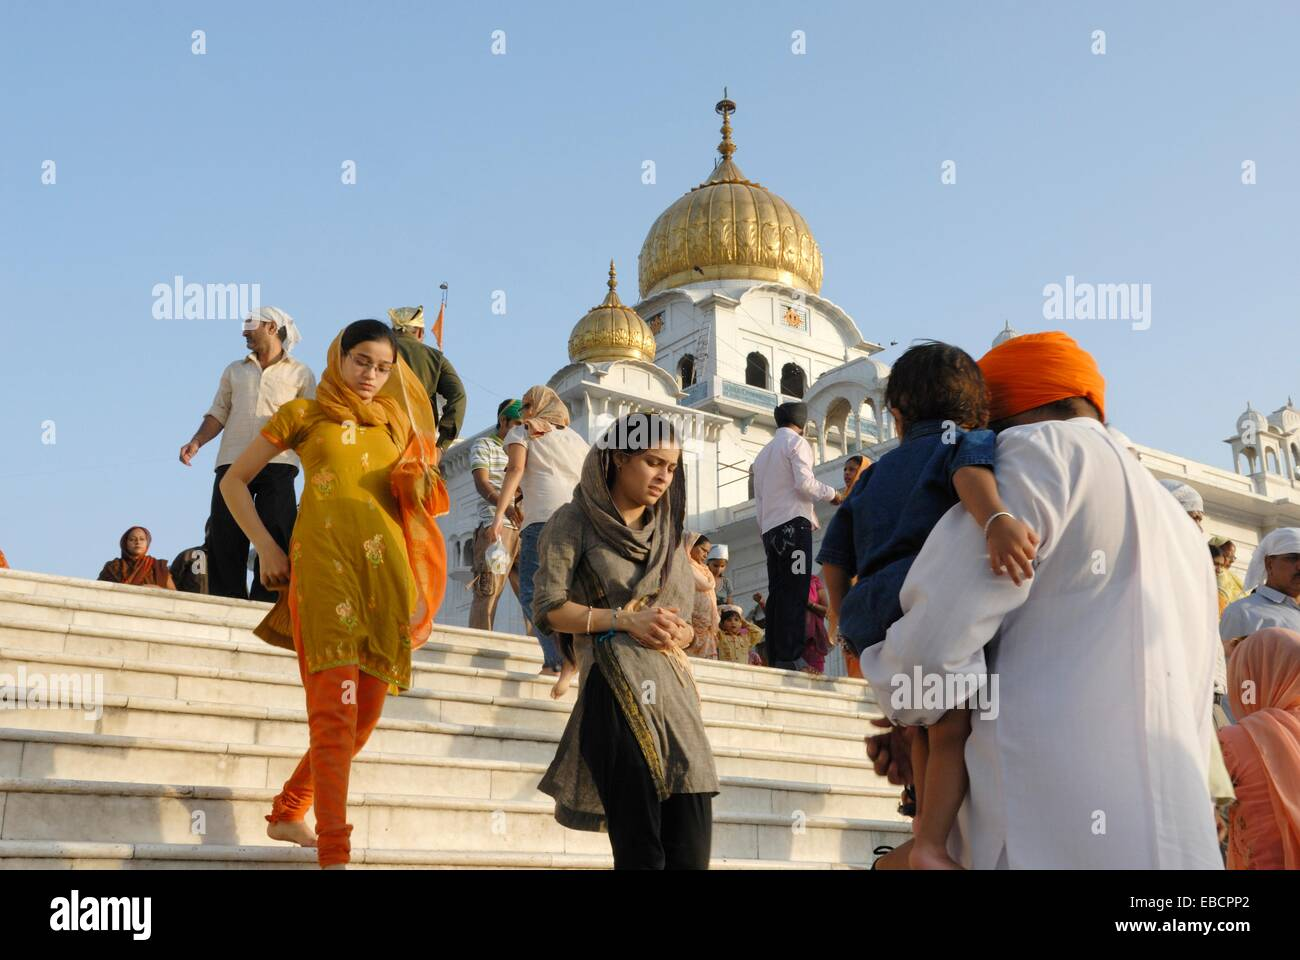 Gurudwara Bangla Sahib the most prominent Sikh gurdwara or Sikh house of worship in Delhi India Asia - Stock Image